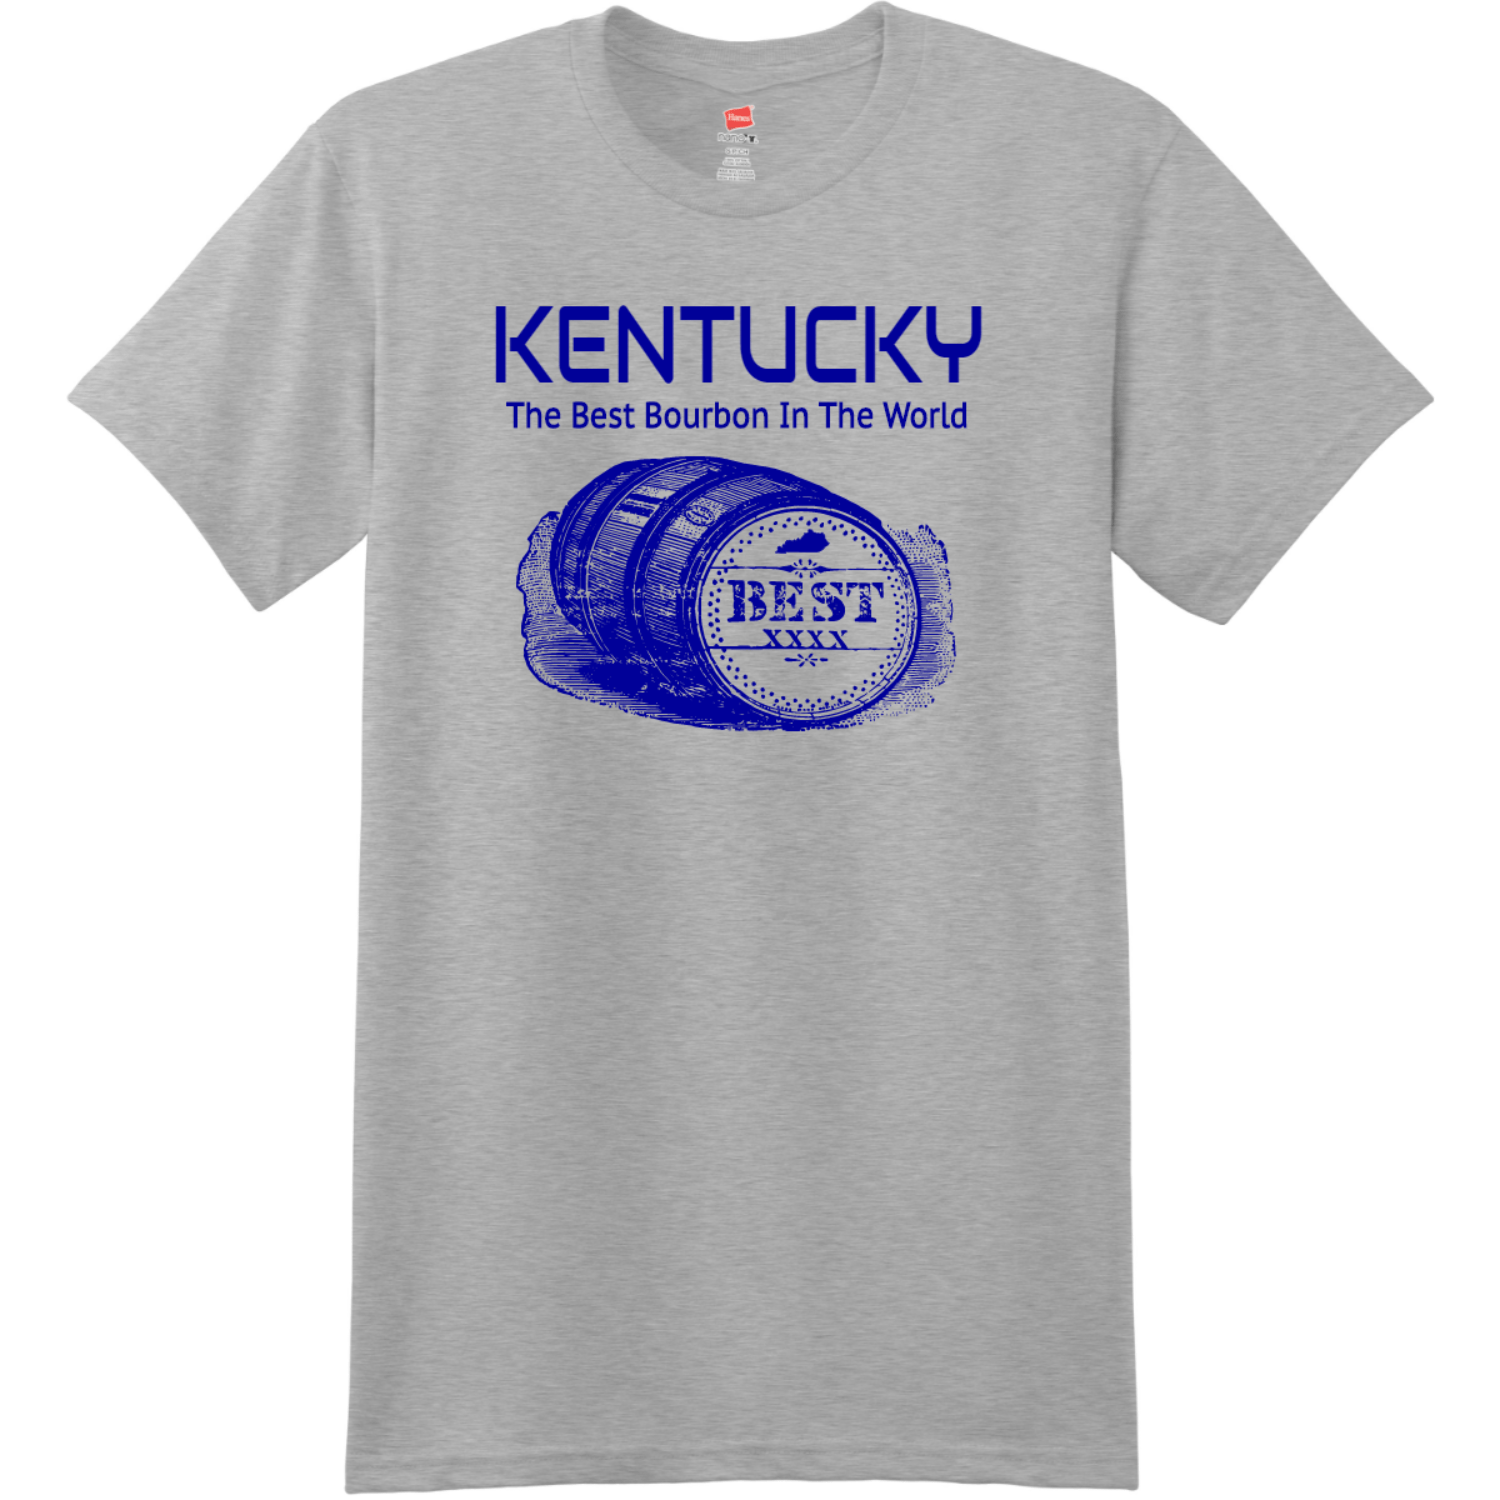 Kentucky The Best Bourbon In The World T-Shirt Light Steel Hanes Nano 4980 Ringspun Cotton T Shirt